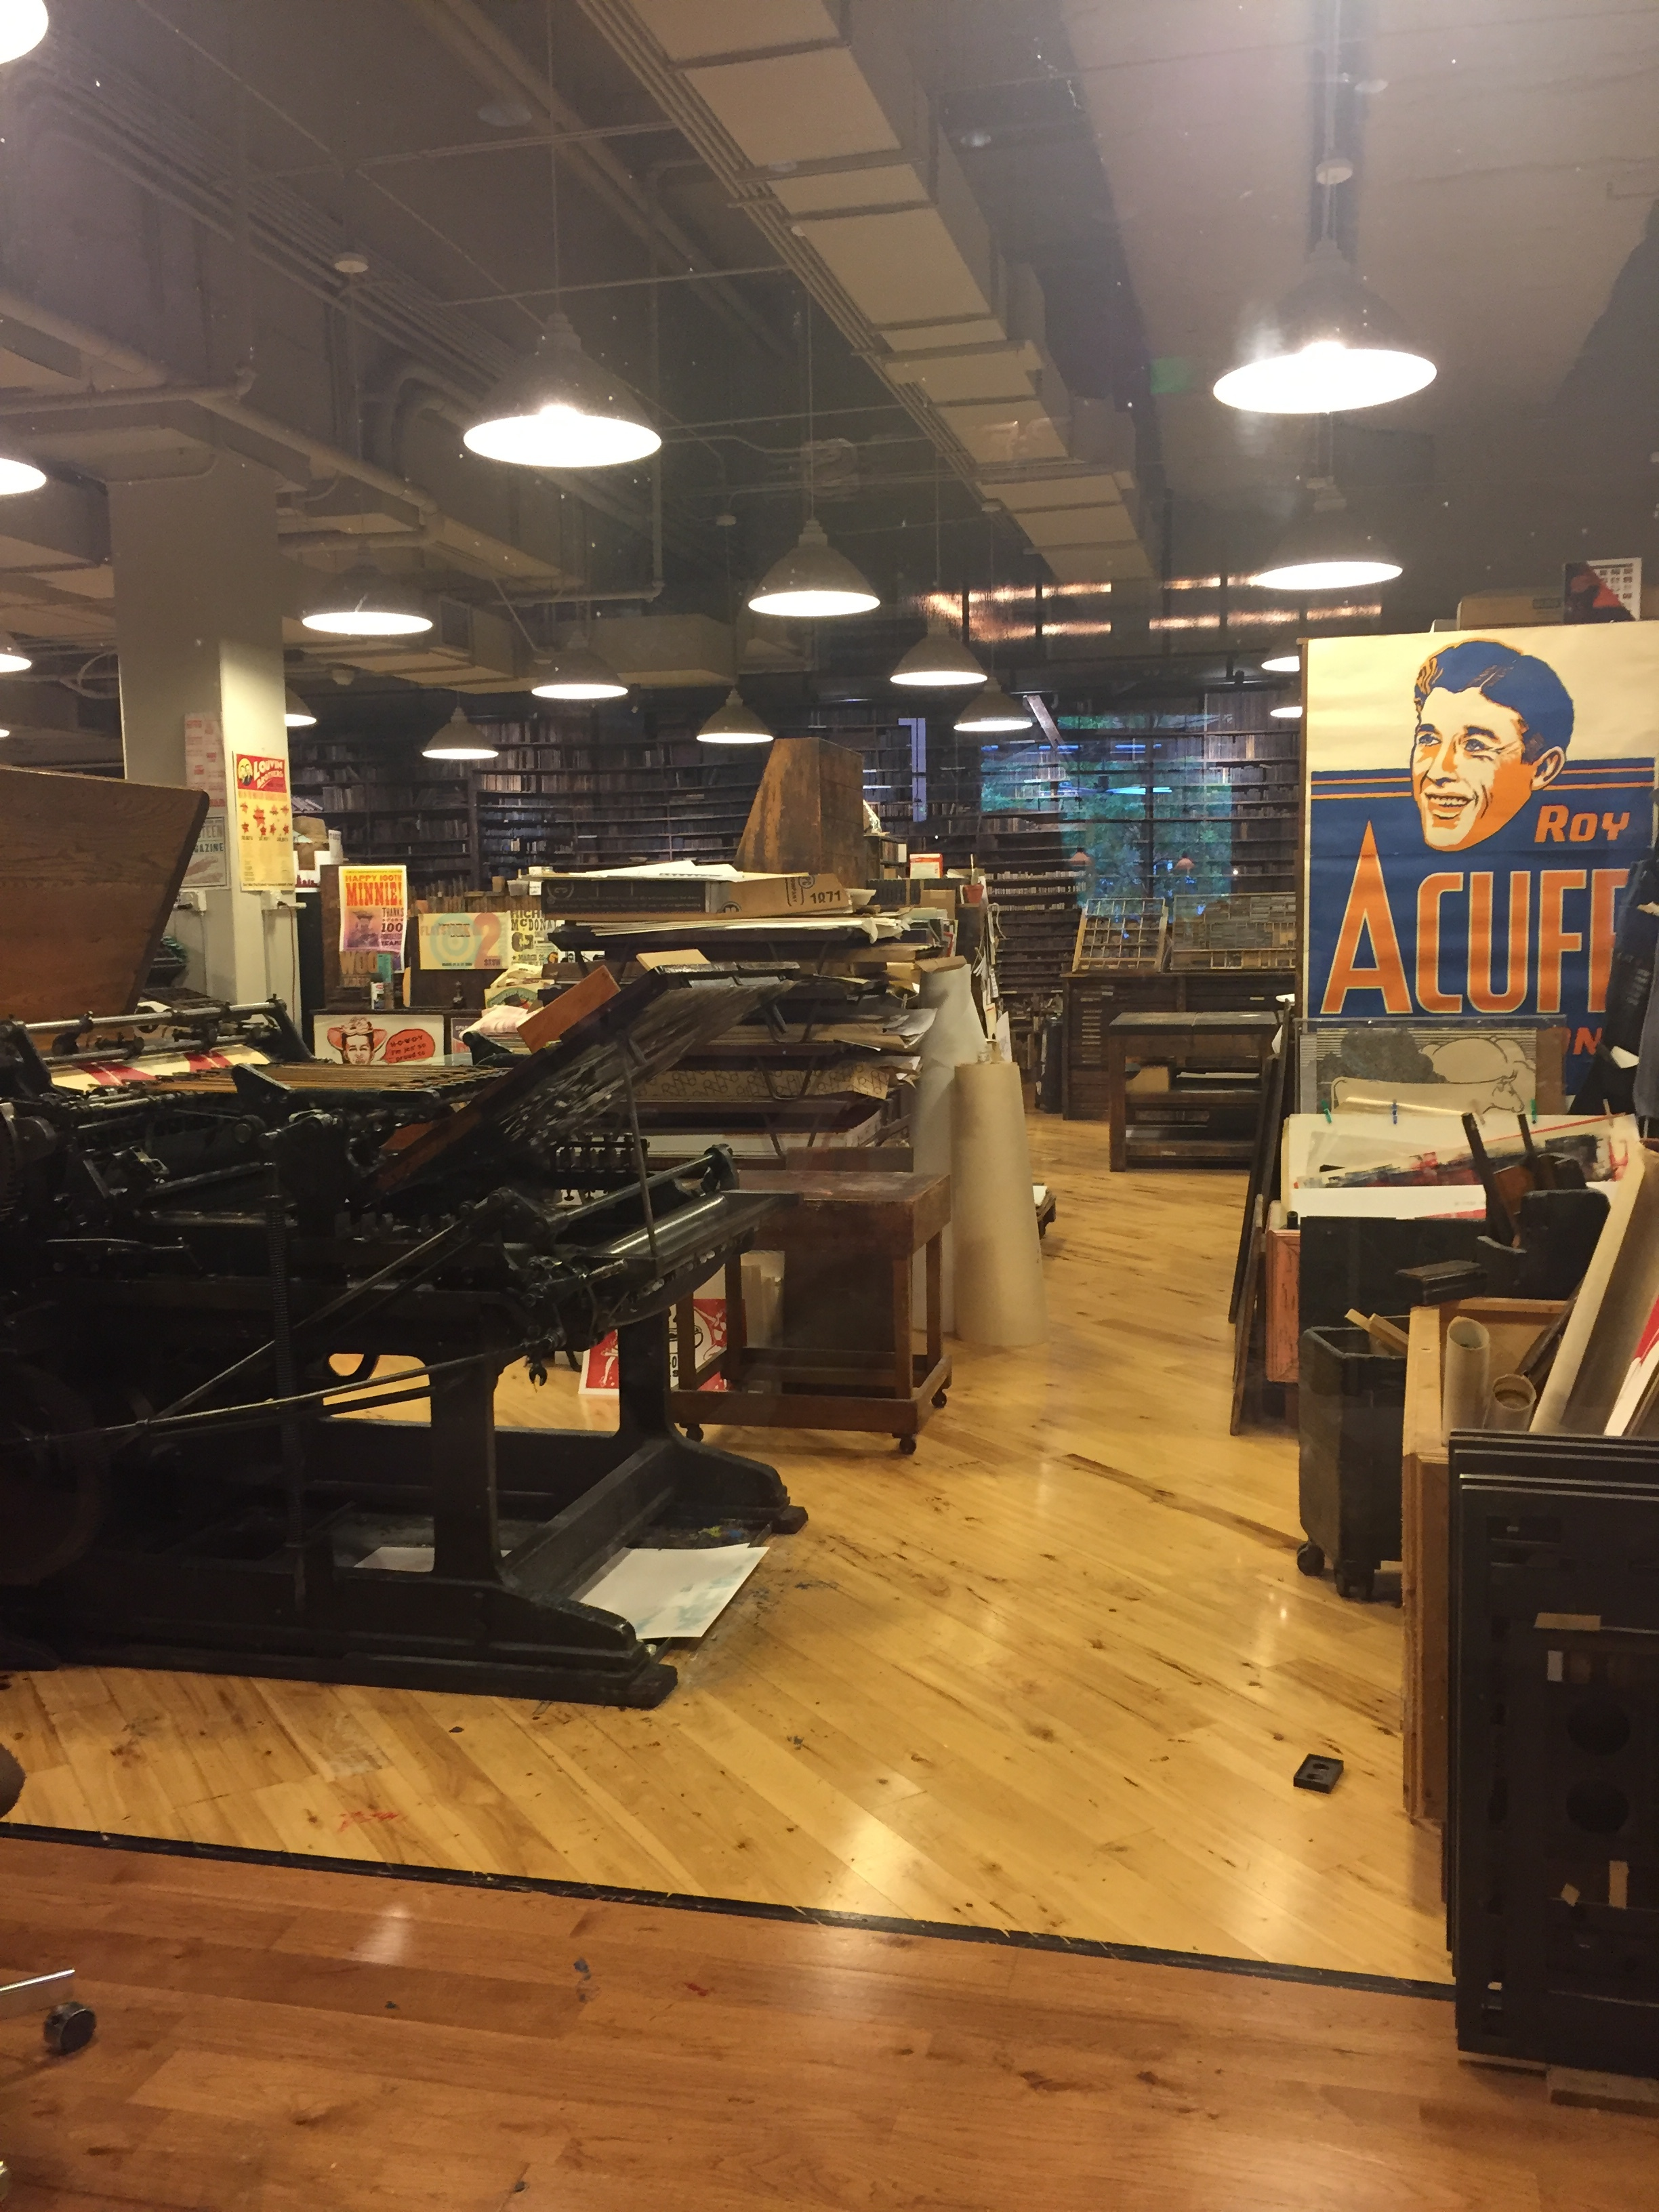 image description: A more brightly lit photo of the rest of the shop.